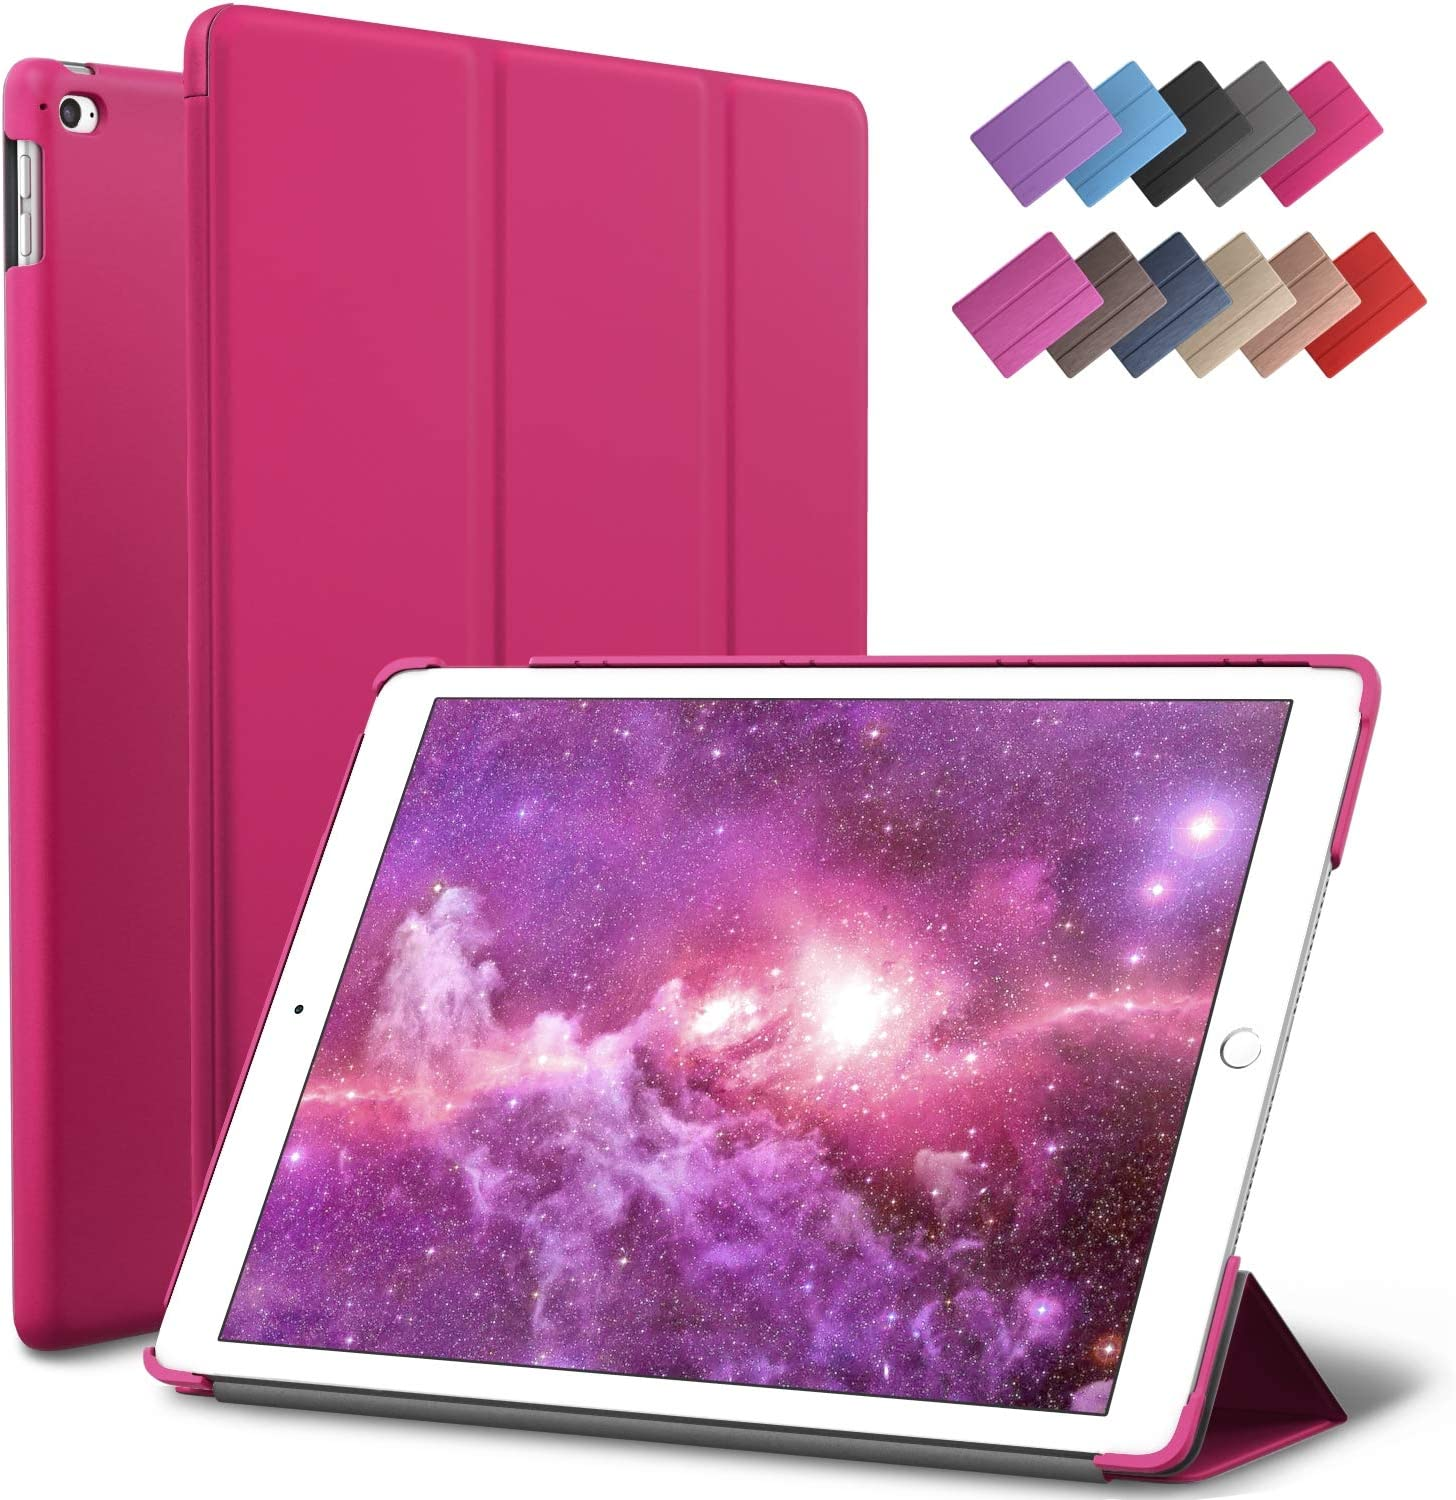 ROARTZ iPad Mini 4 case, Magenta Slim Fit Smart Rubber Coated Folio Case Hard Cover Light-Weight Auto Wake/Sleep for Apple iPad Mini 4th Generation Model A1538/A1550 Retina Display